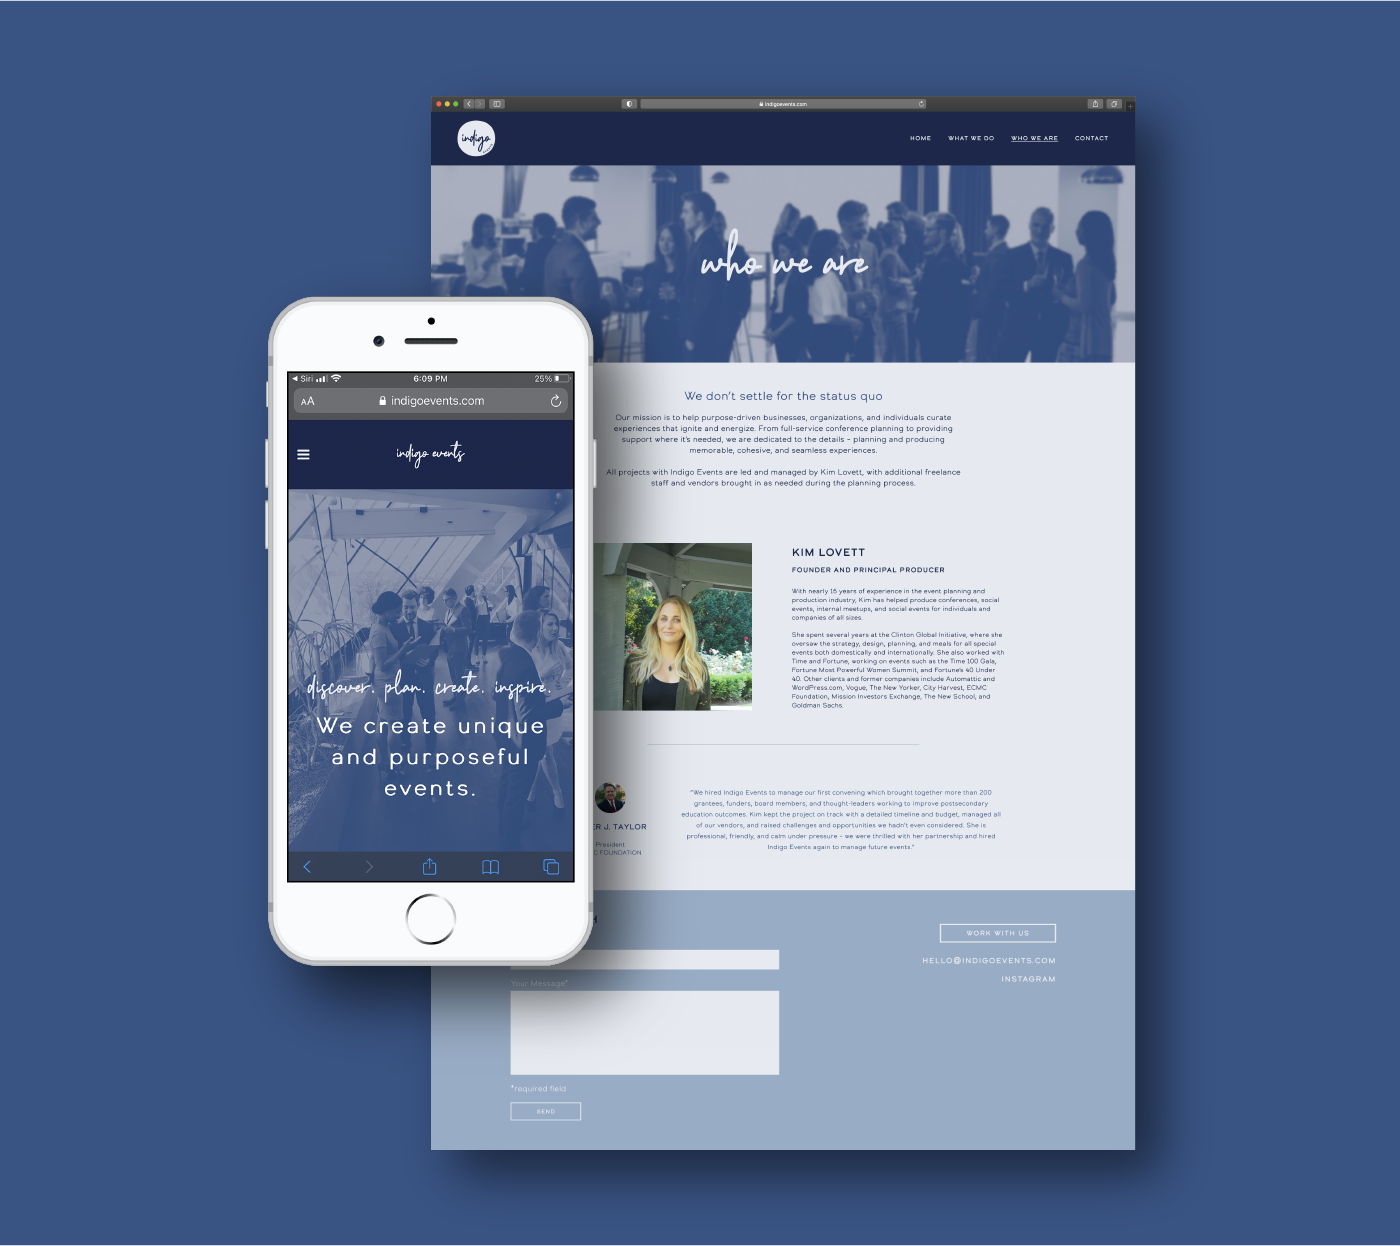 indigo events website design with mobile